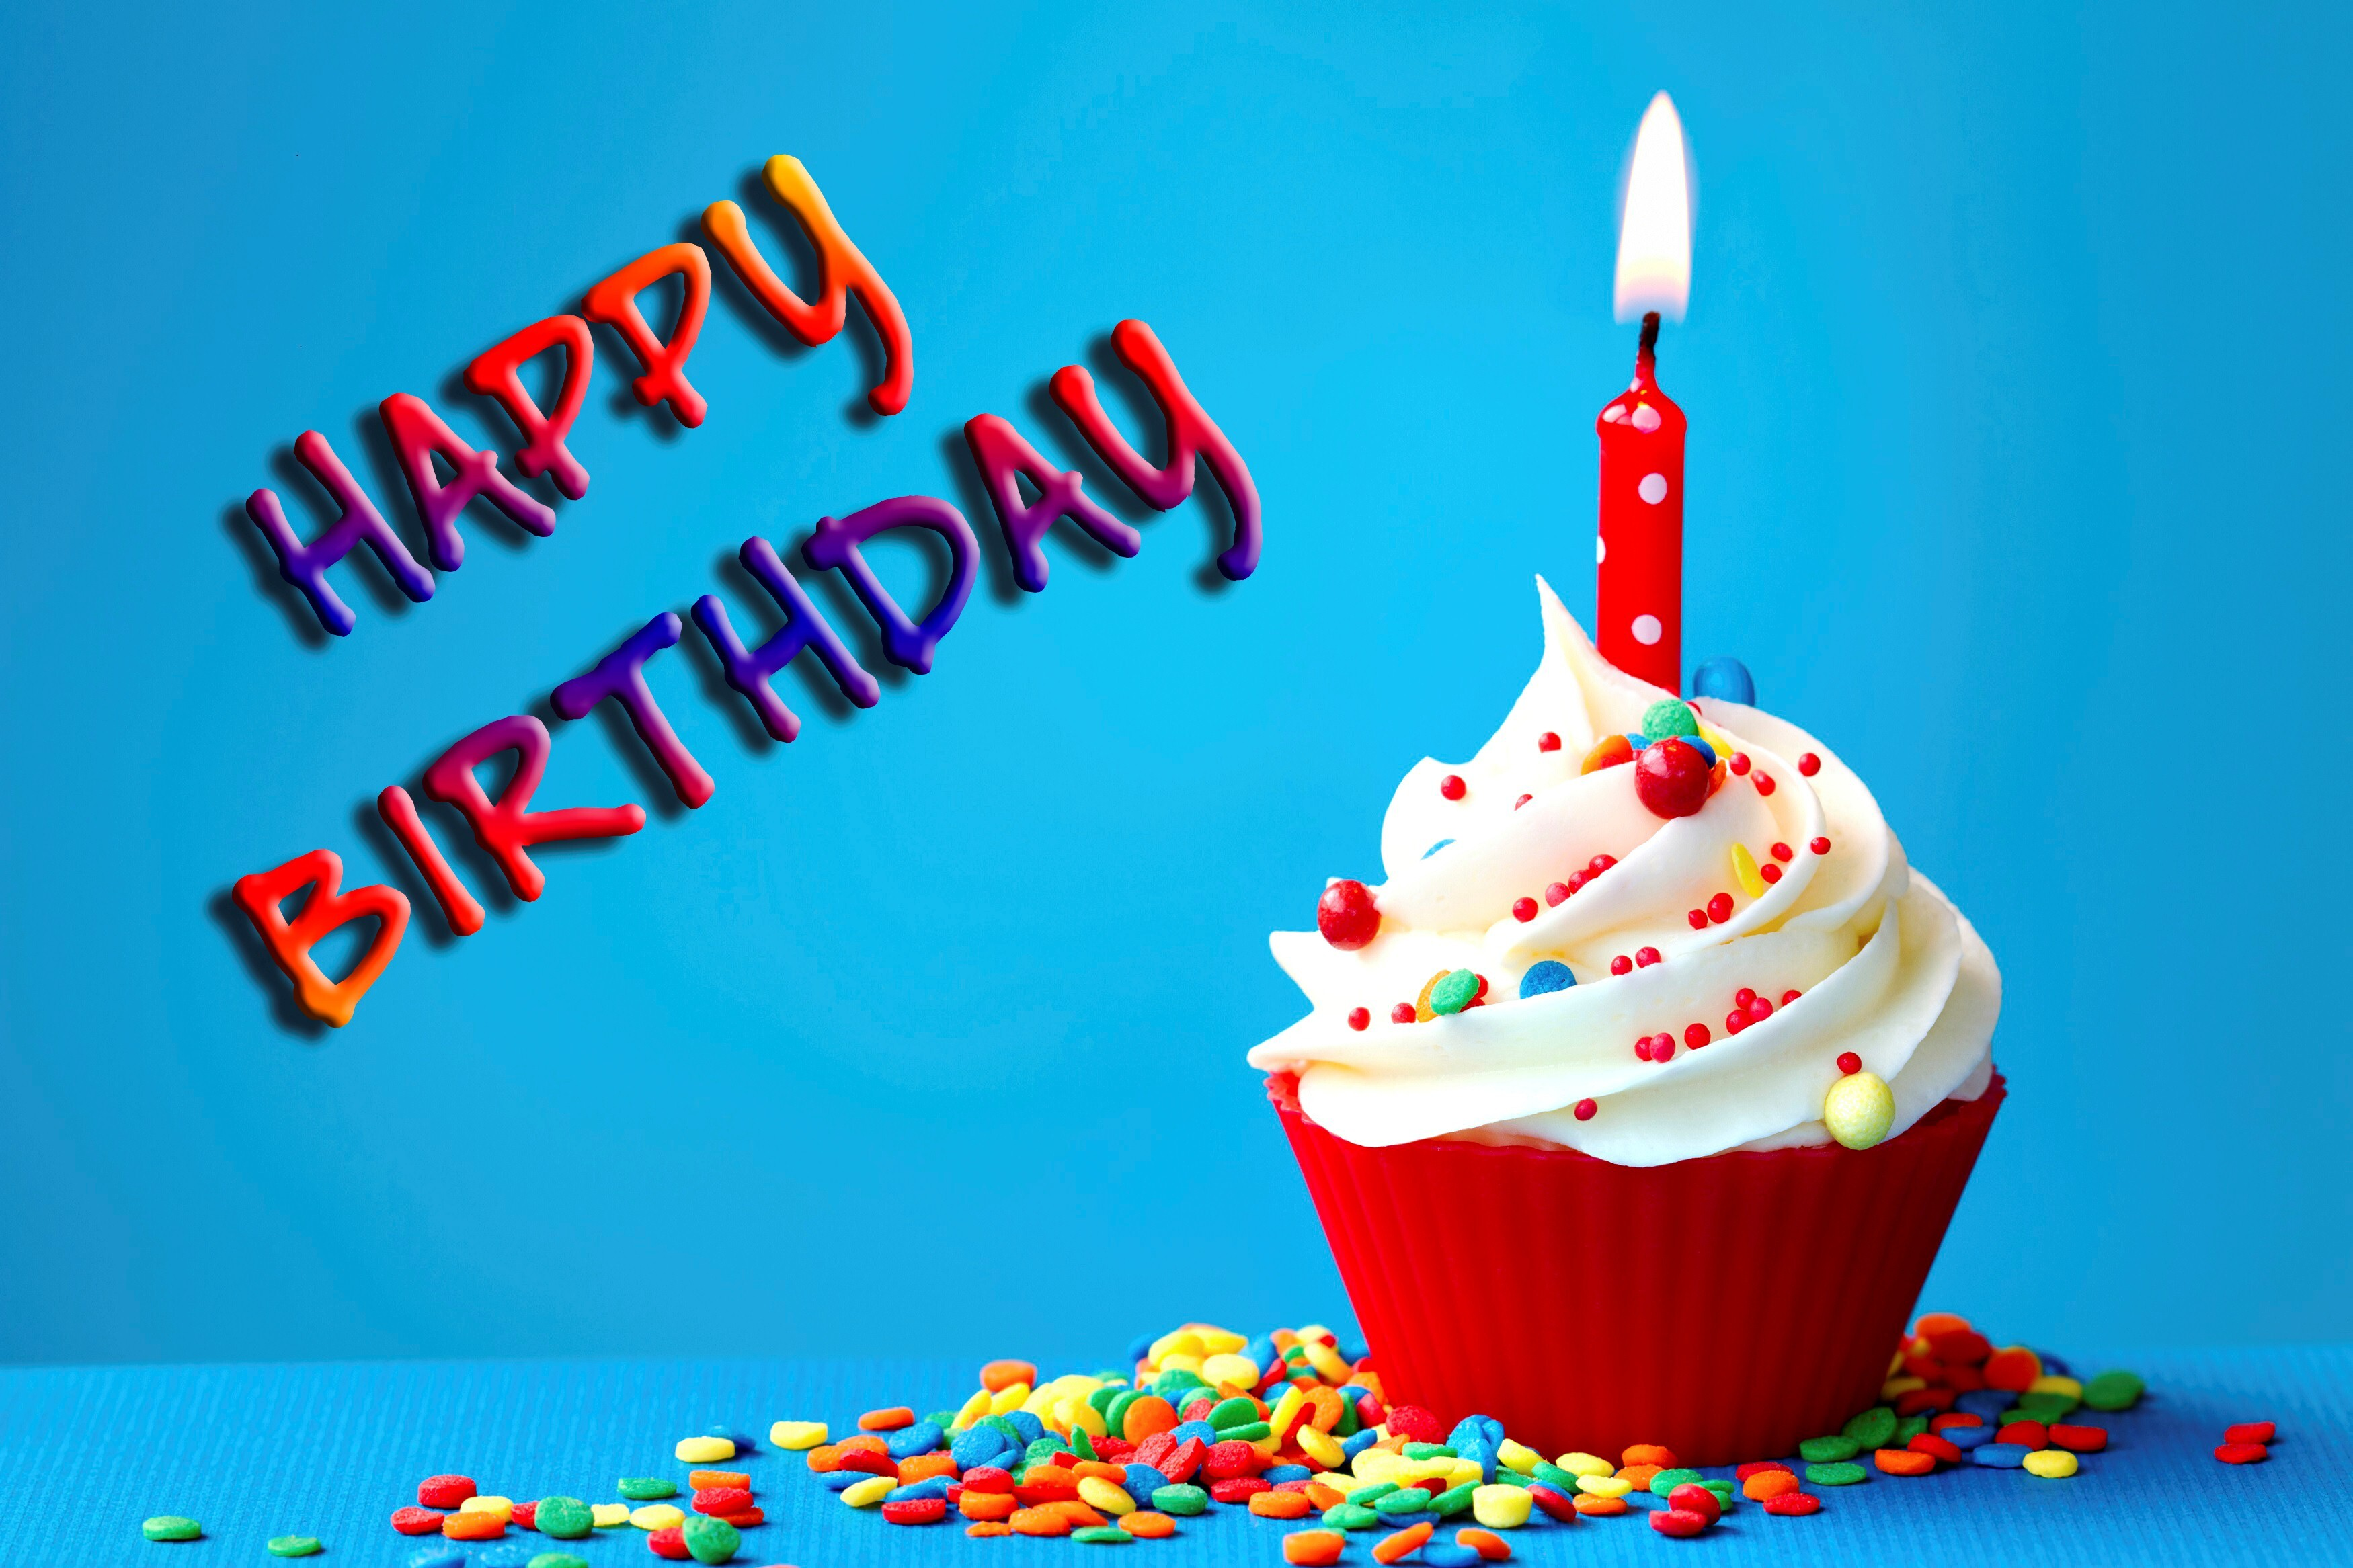 Amazing Birthday Wish with Cake and Candle Wallpaper | HD ...